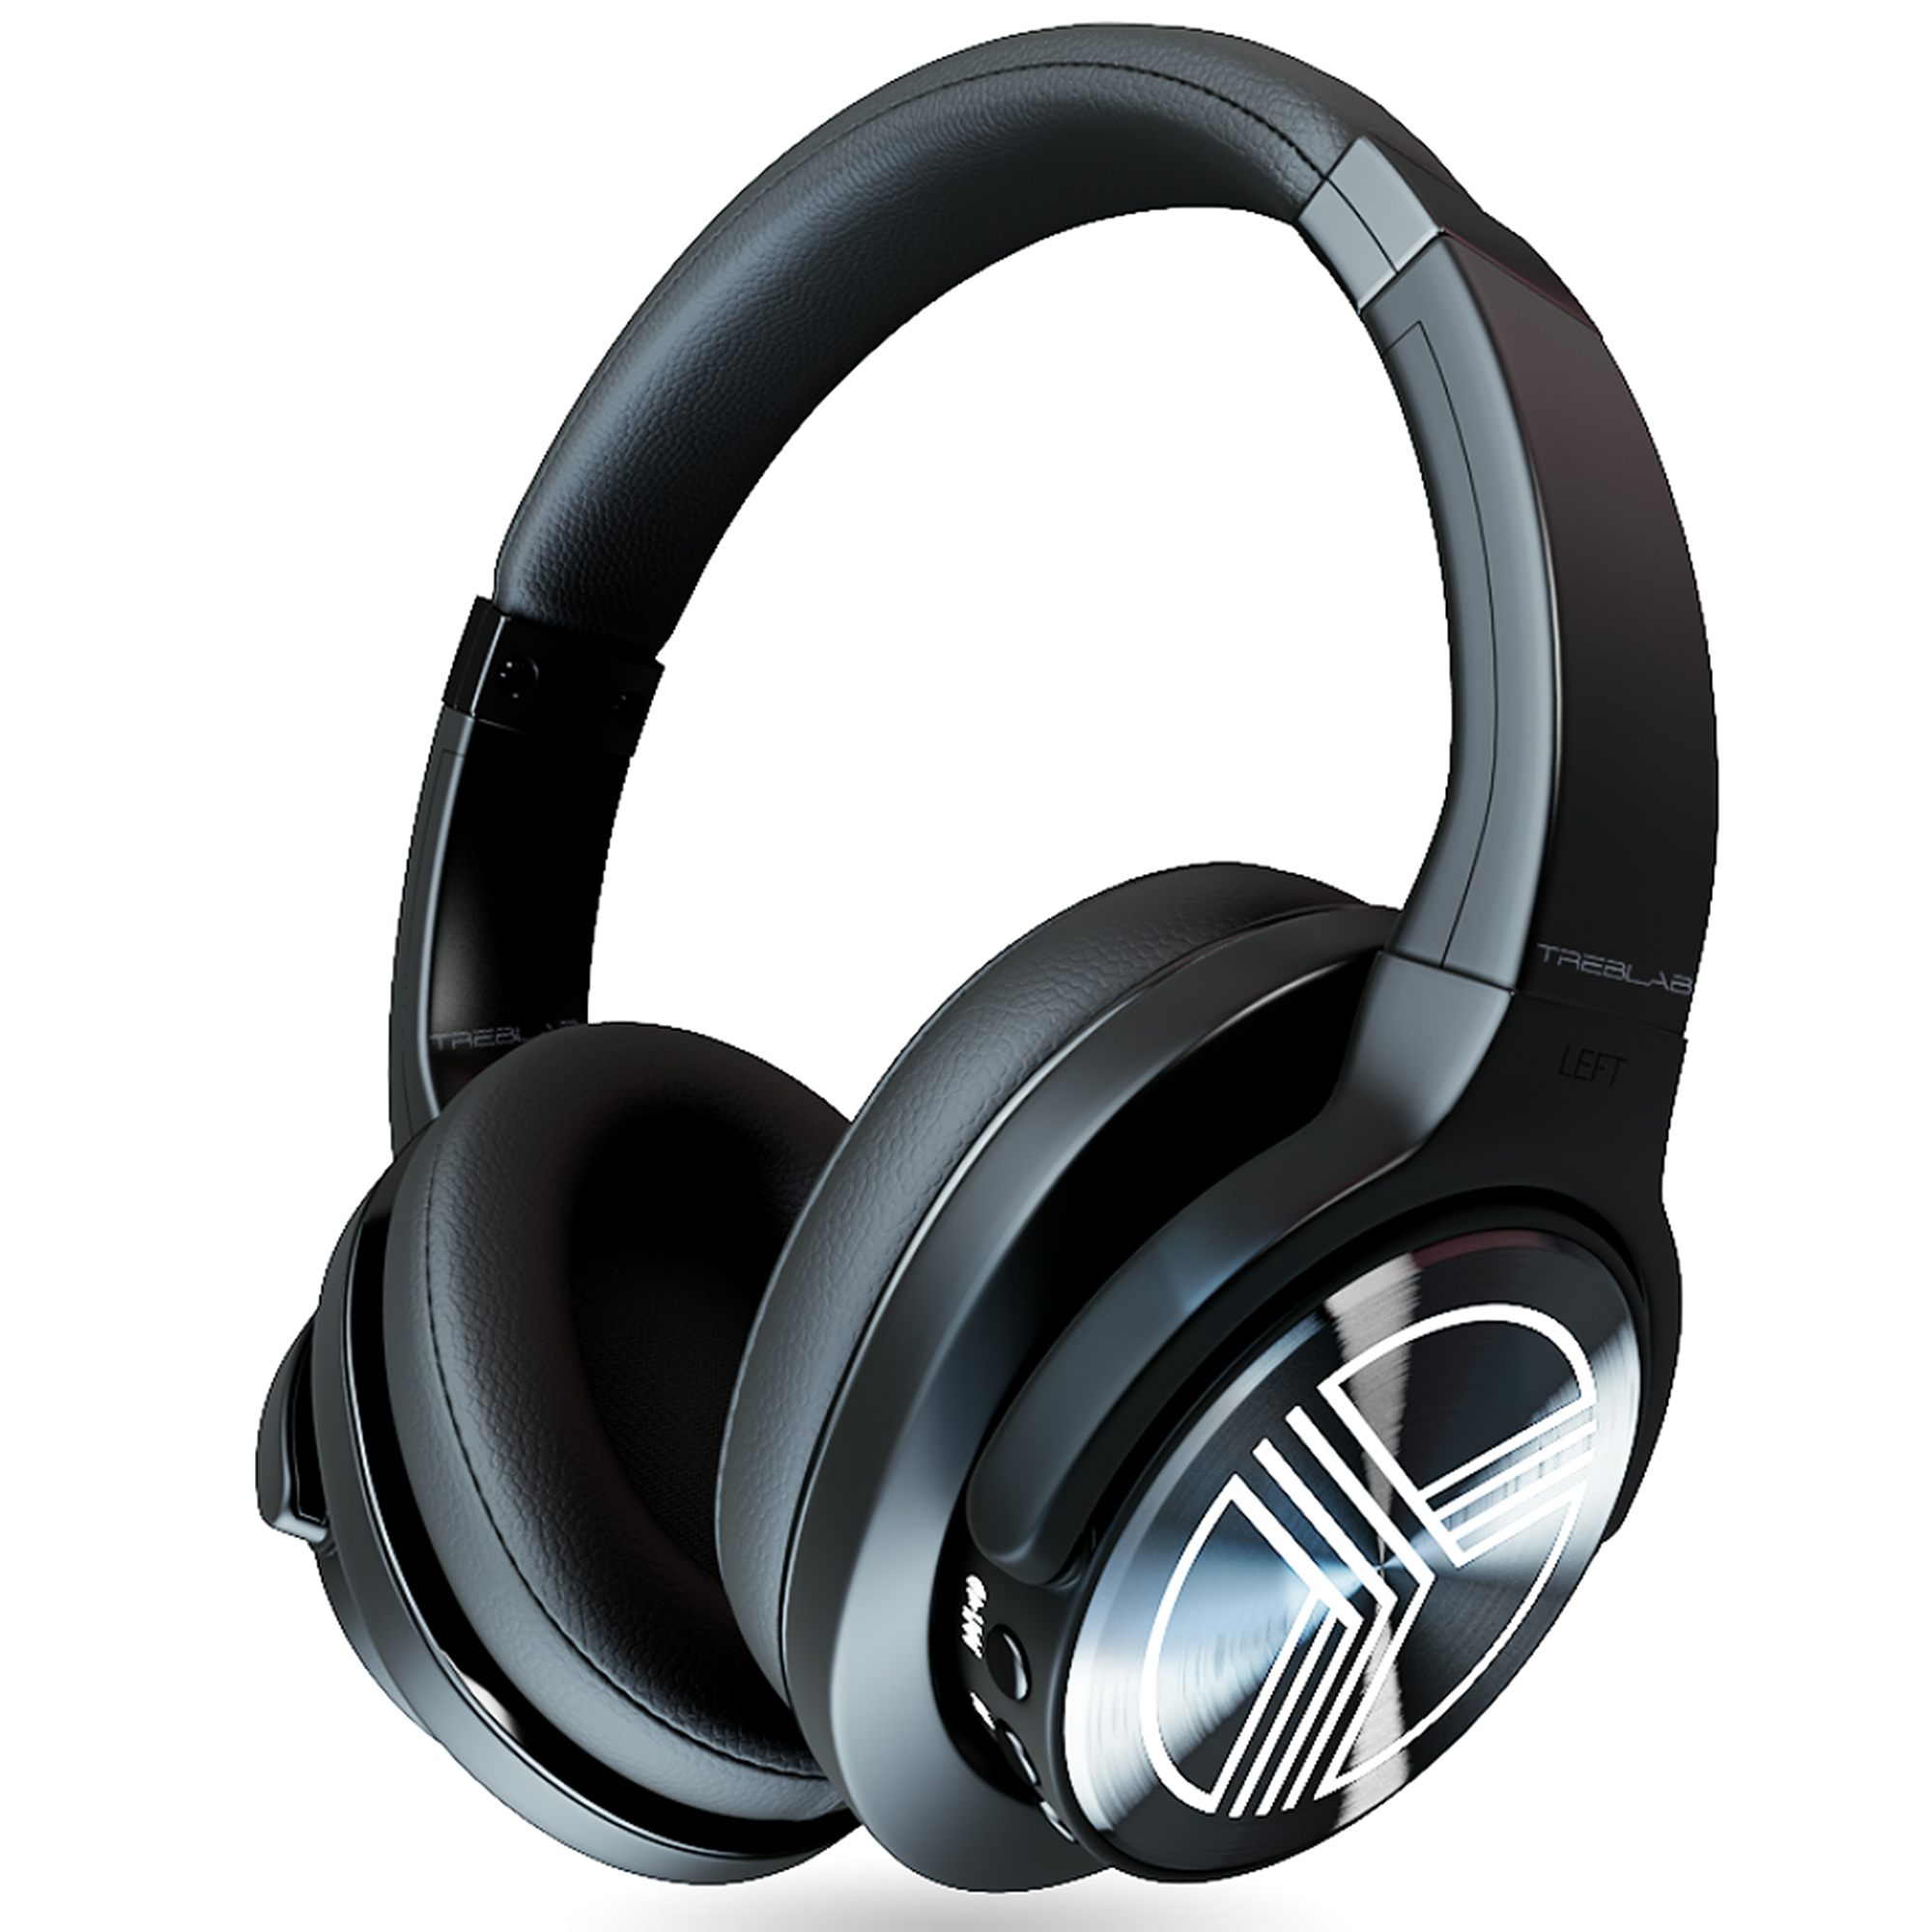 Best Noise Cancelling Headphones - TREBLAB Z2 - Bluetooth Active Noise Cancelling Headphones Review